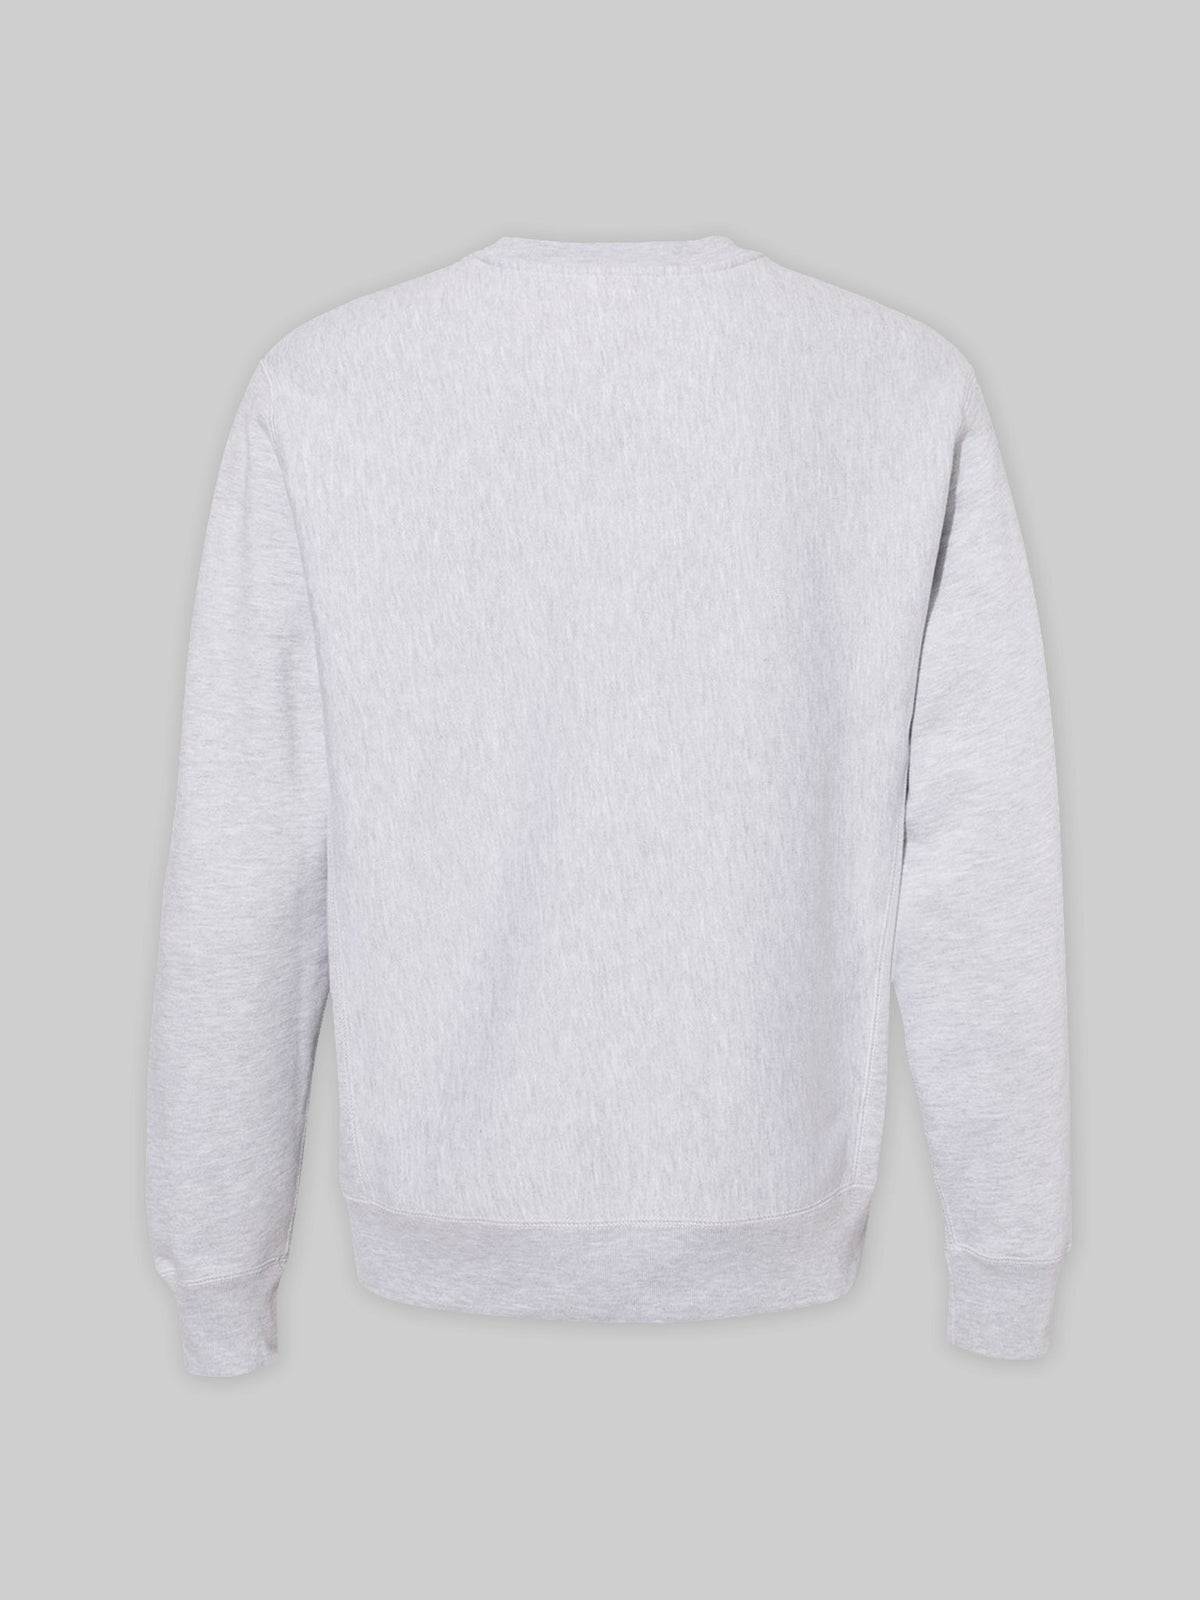 "BKc 20/20 ""Classic B Crewneck"" Heather"